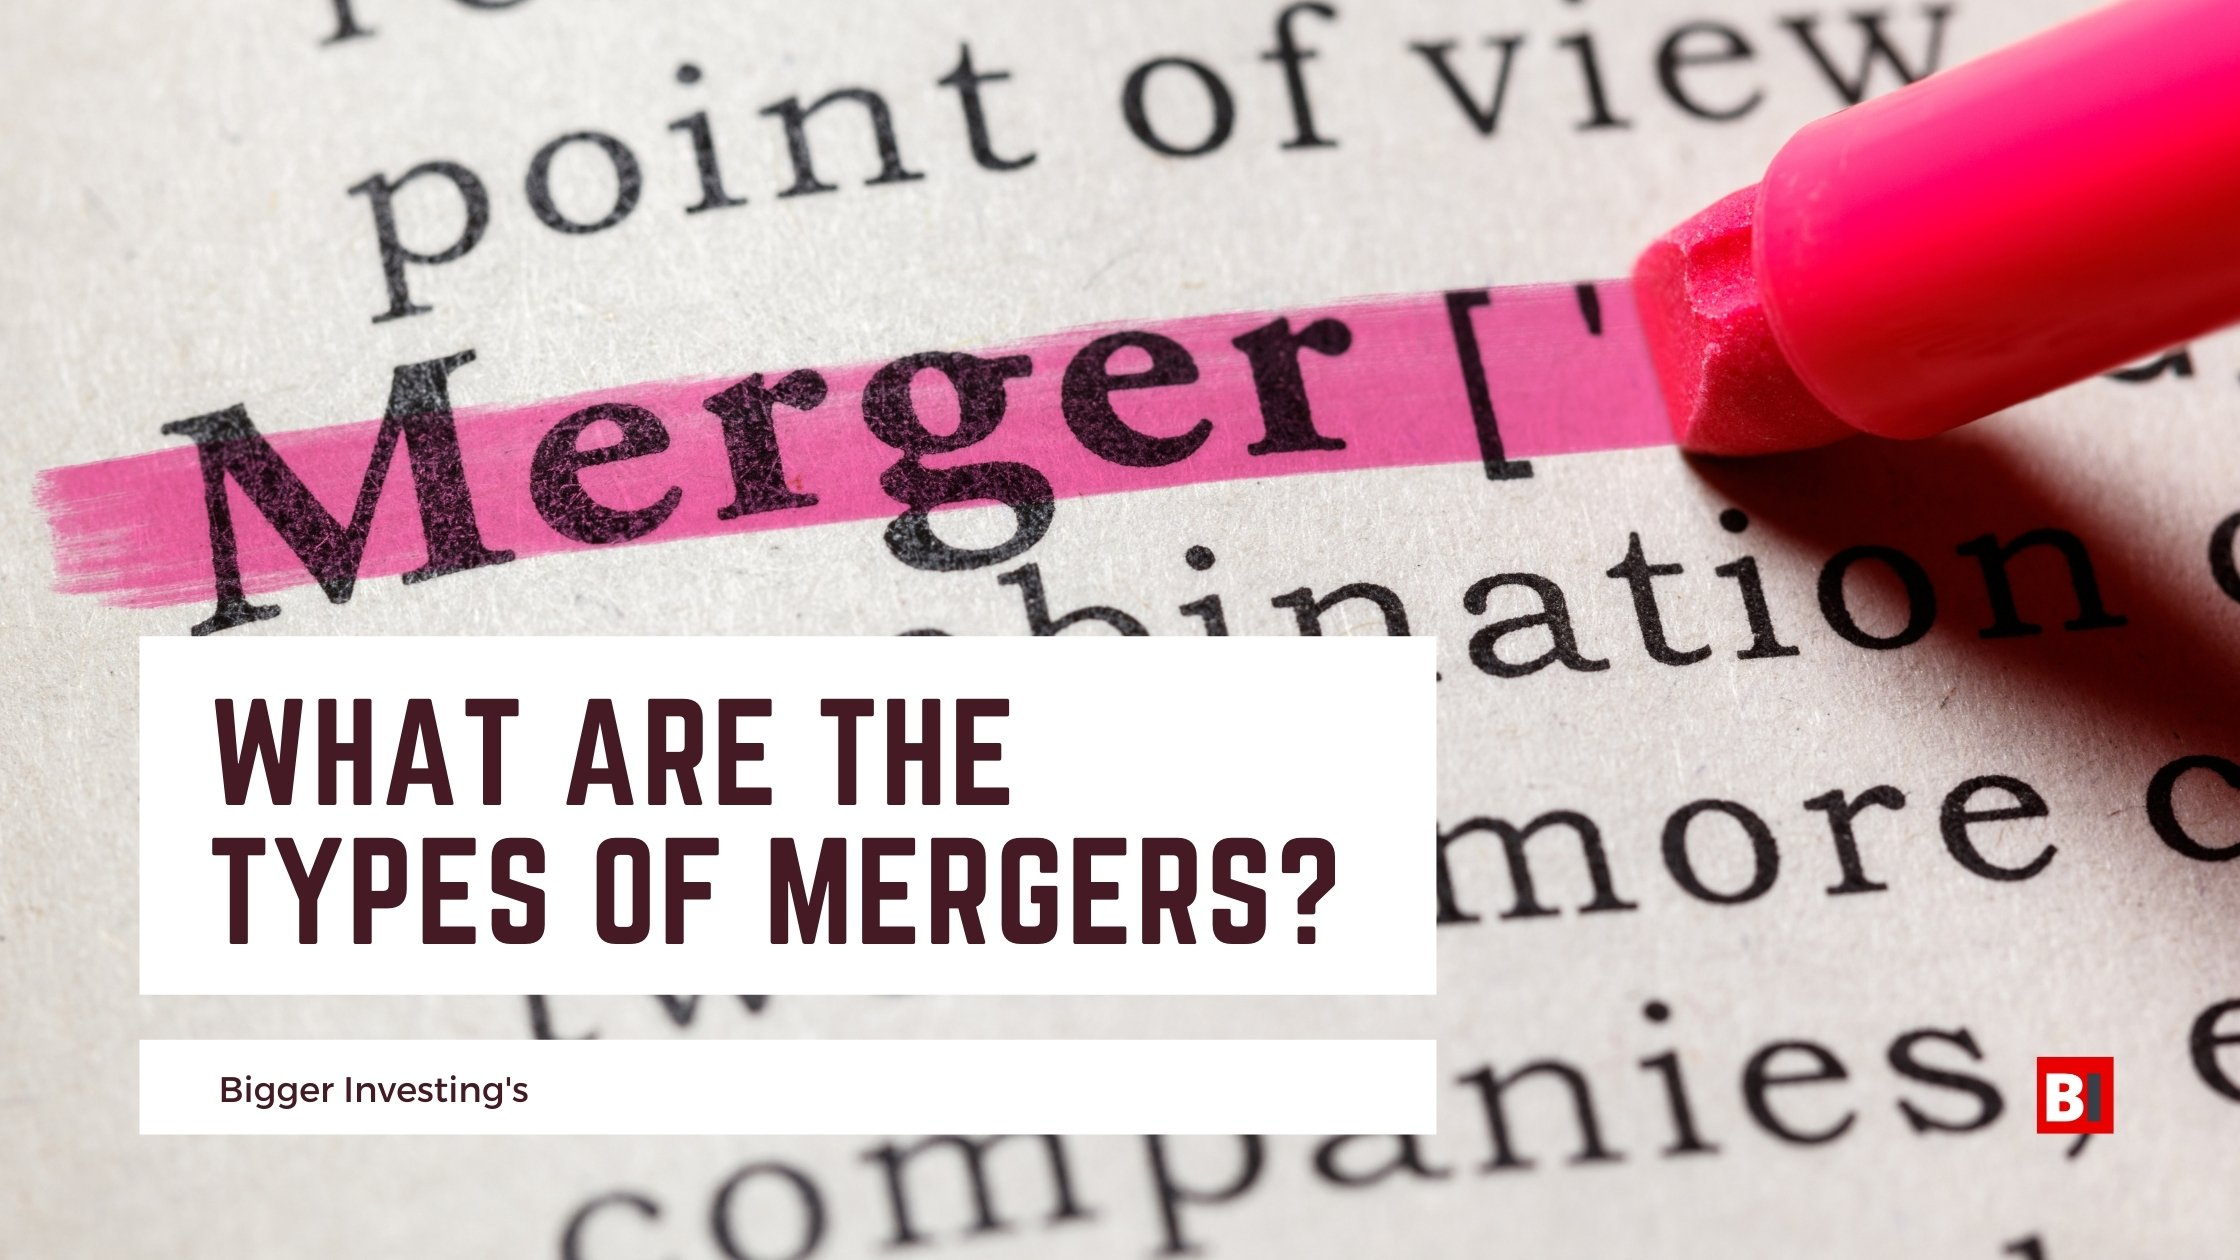 What Are The Types of Mergers?